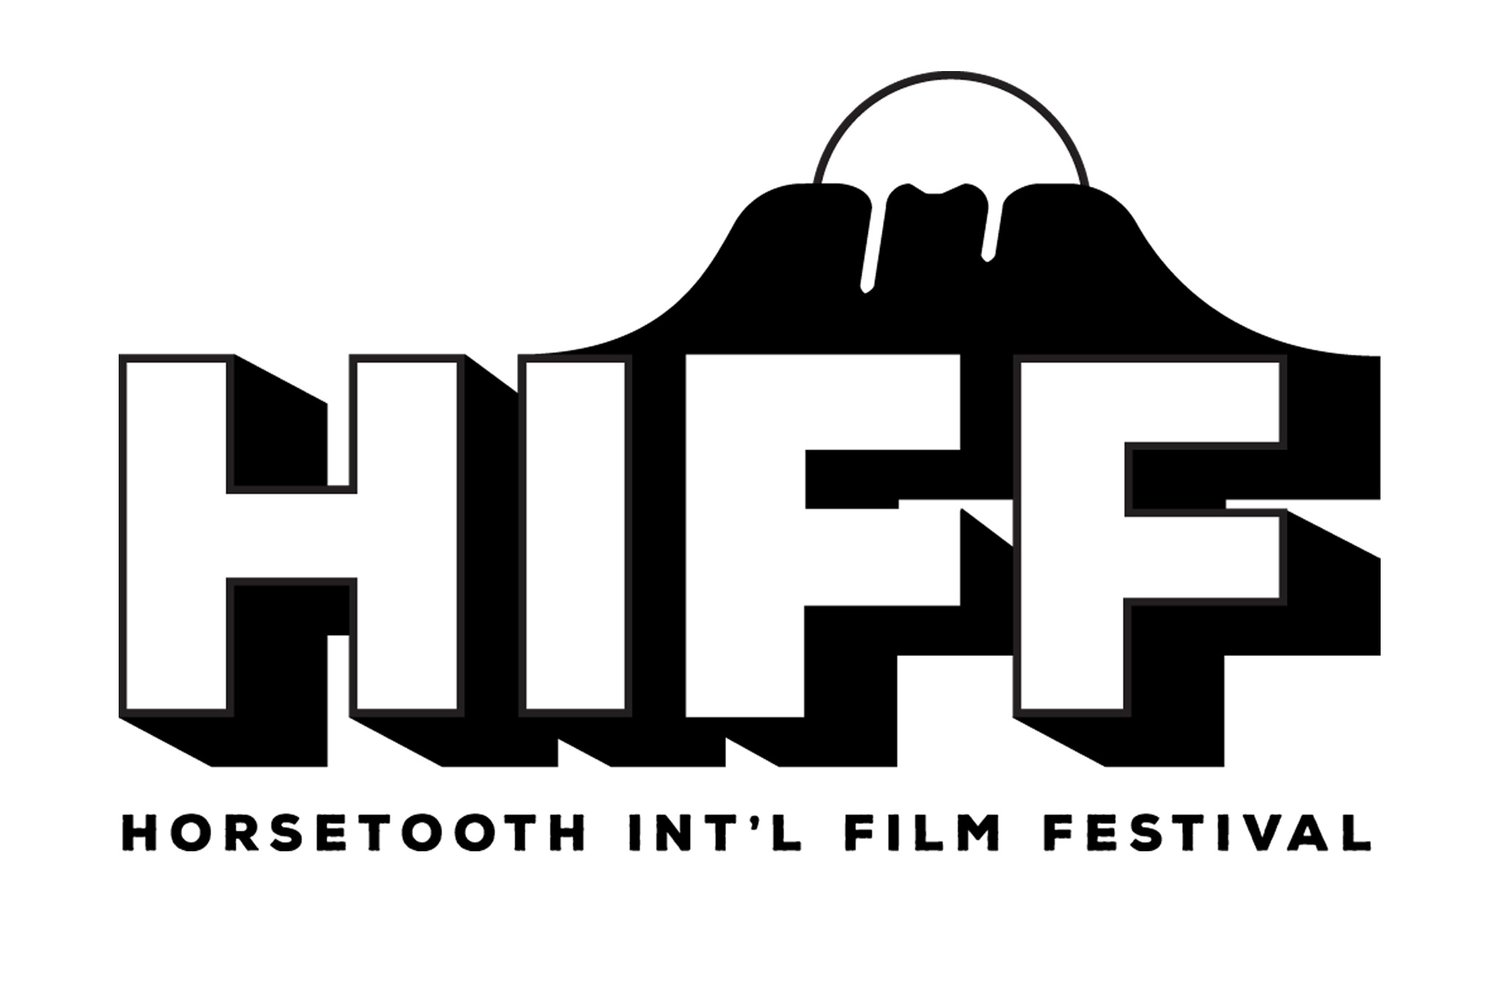 Horsetooth International Film Festival